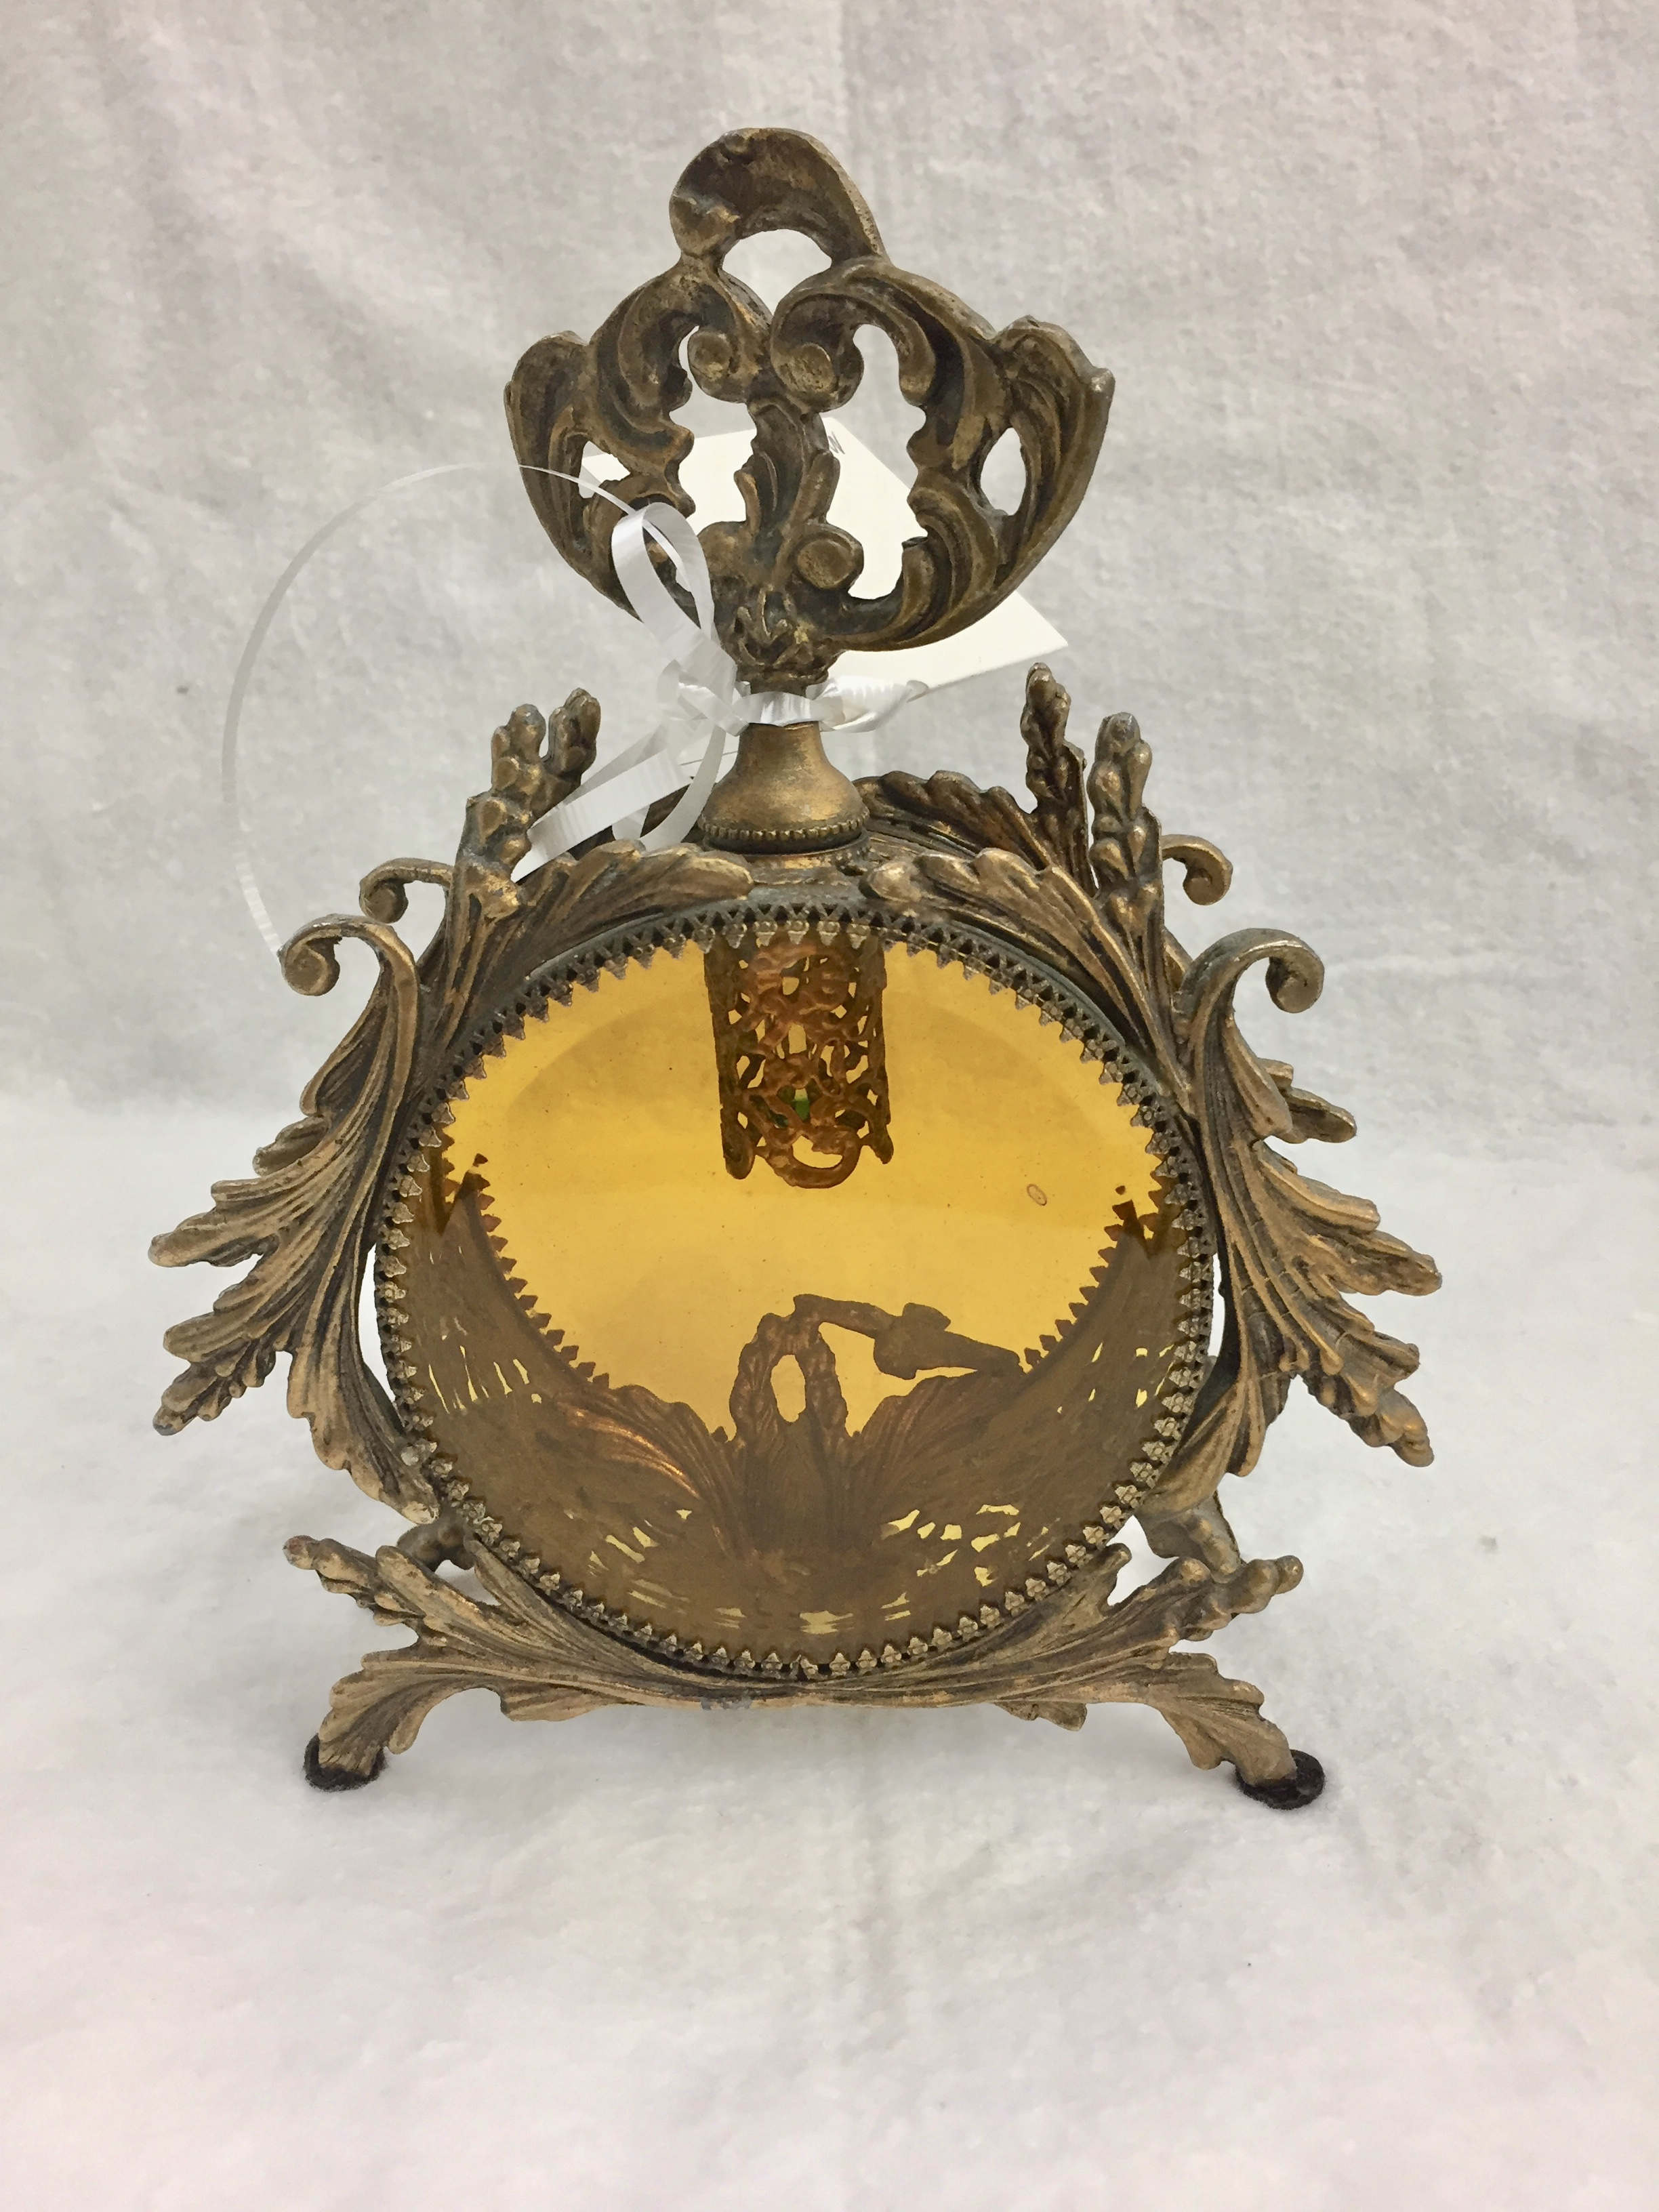 Decorative Ormolu Perfume Bottle